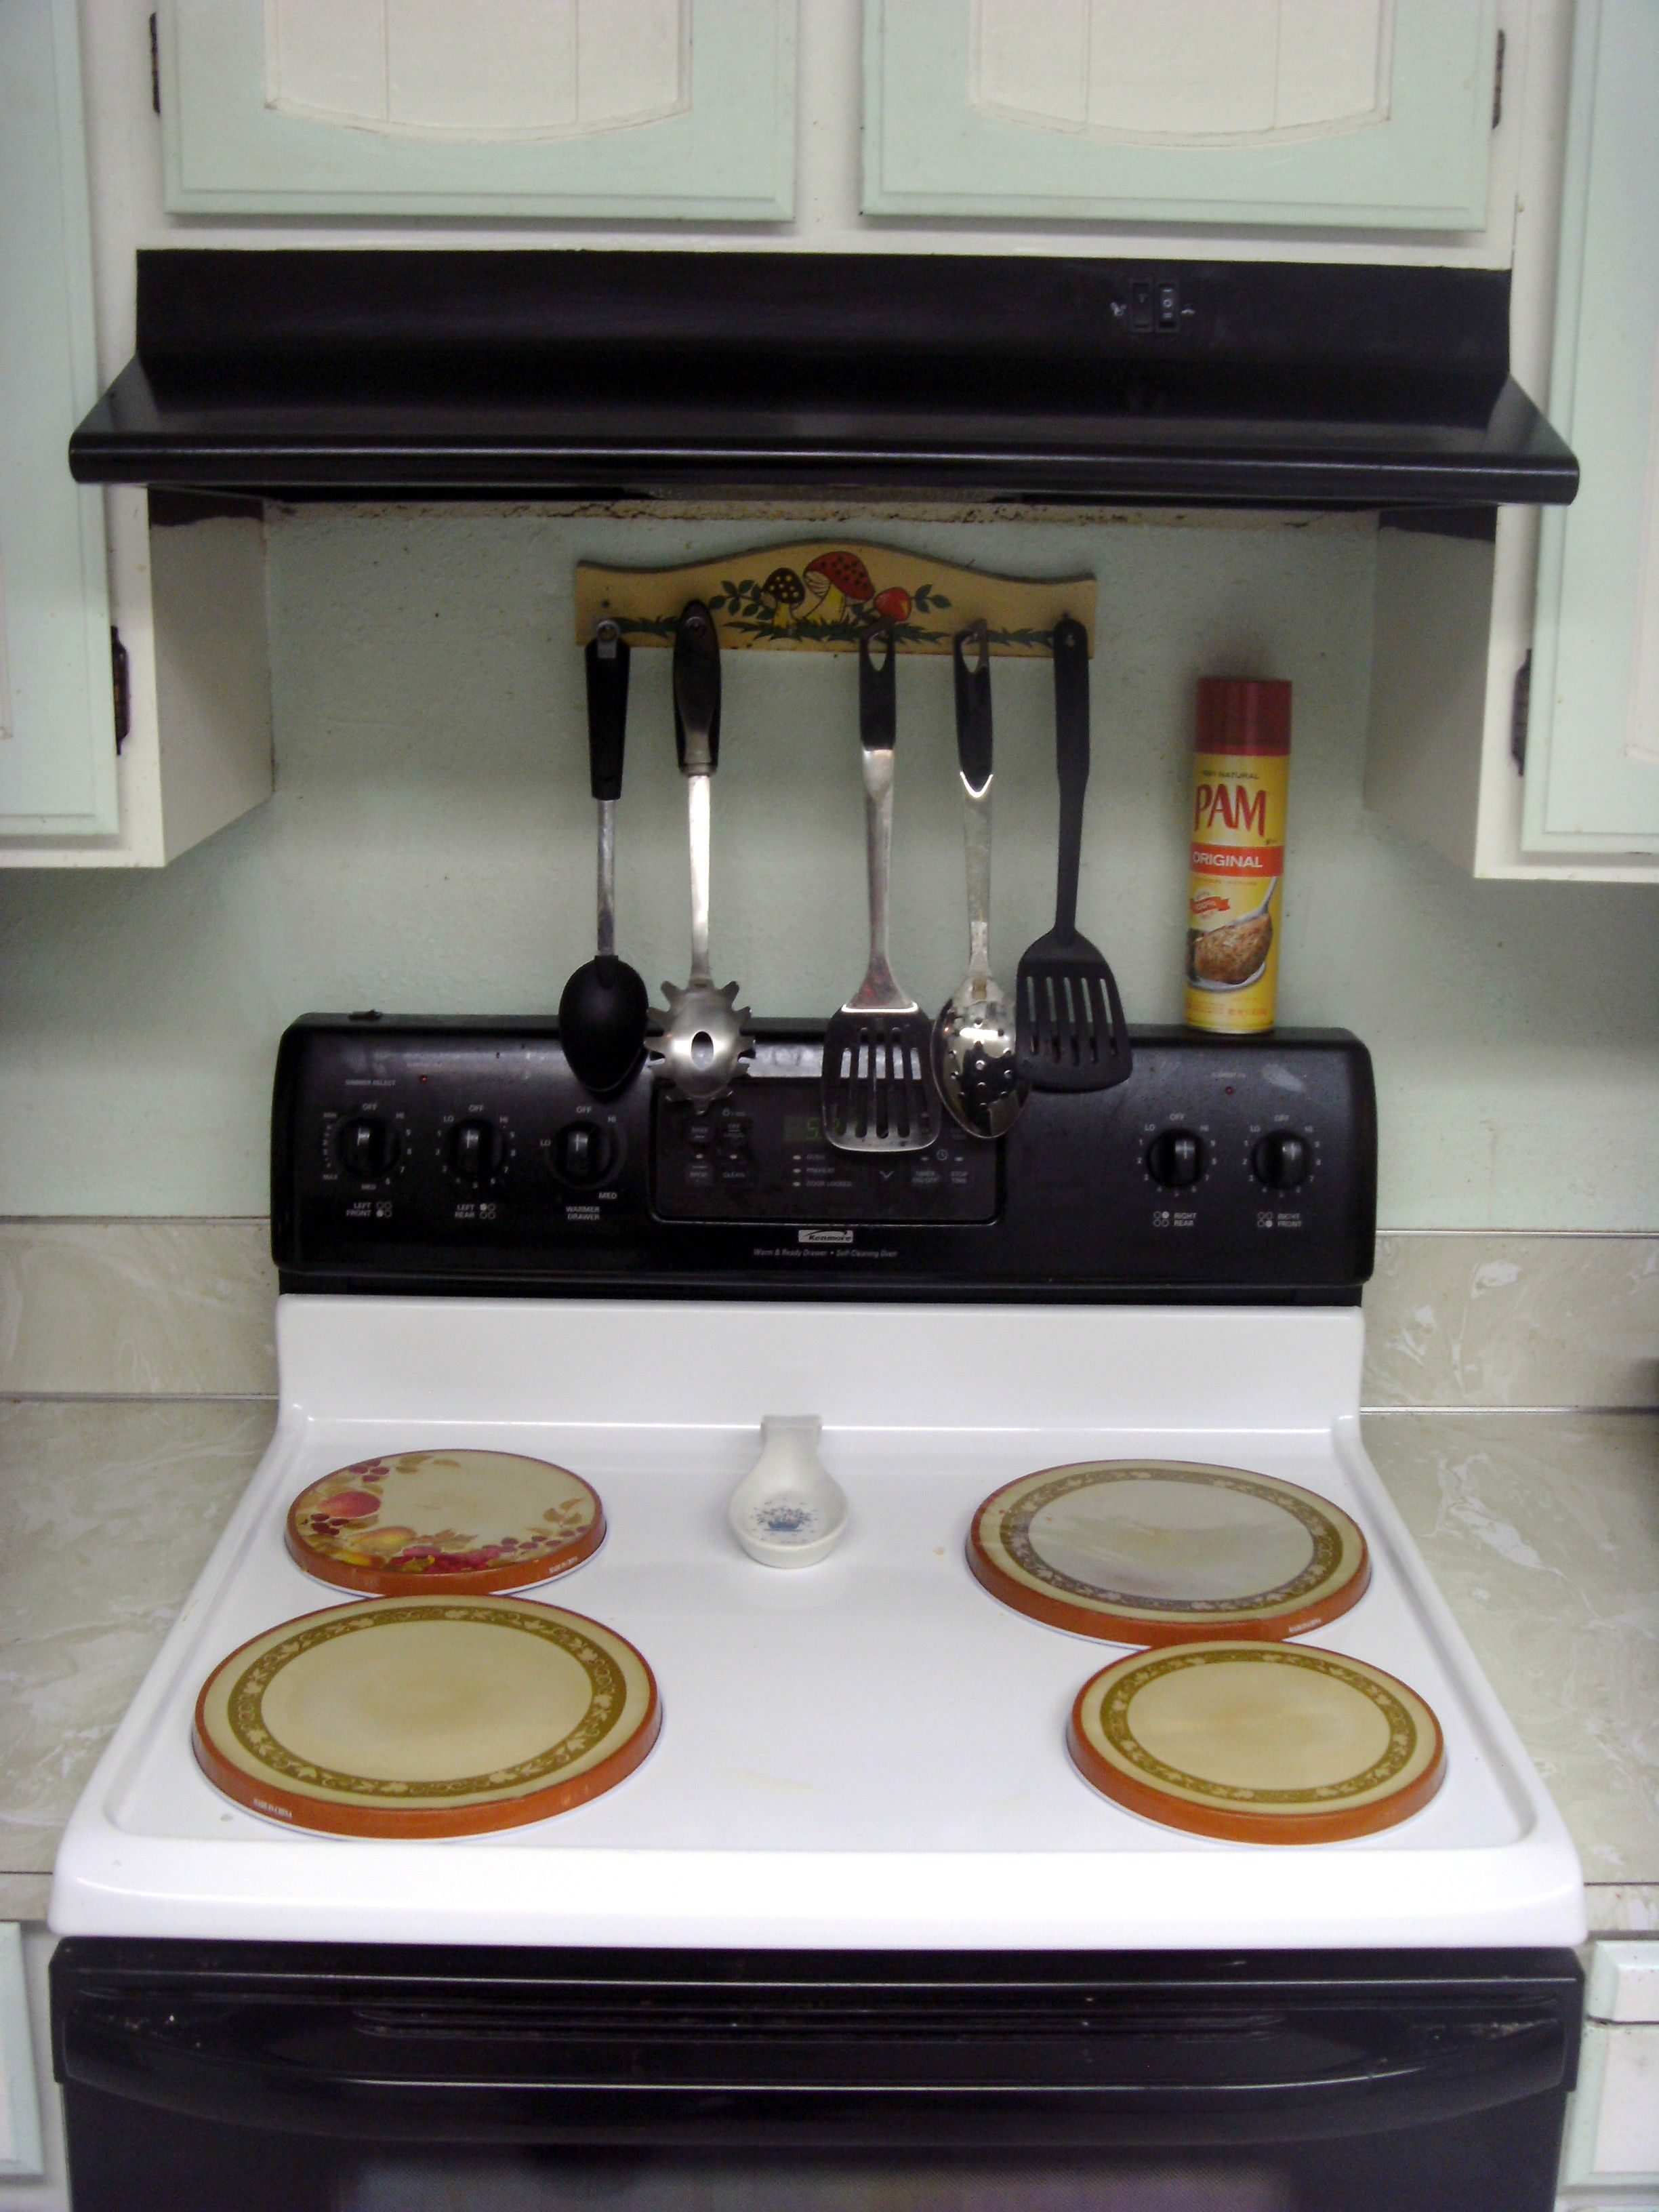 How To Install An Over The Range Microwave Range Microwave Over The Stove Microwave Above Range Microwave